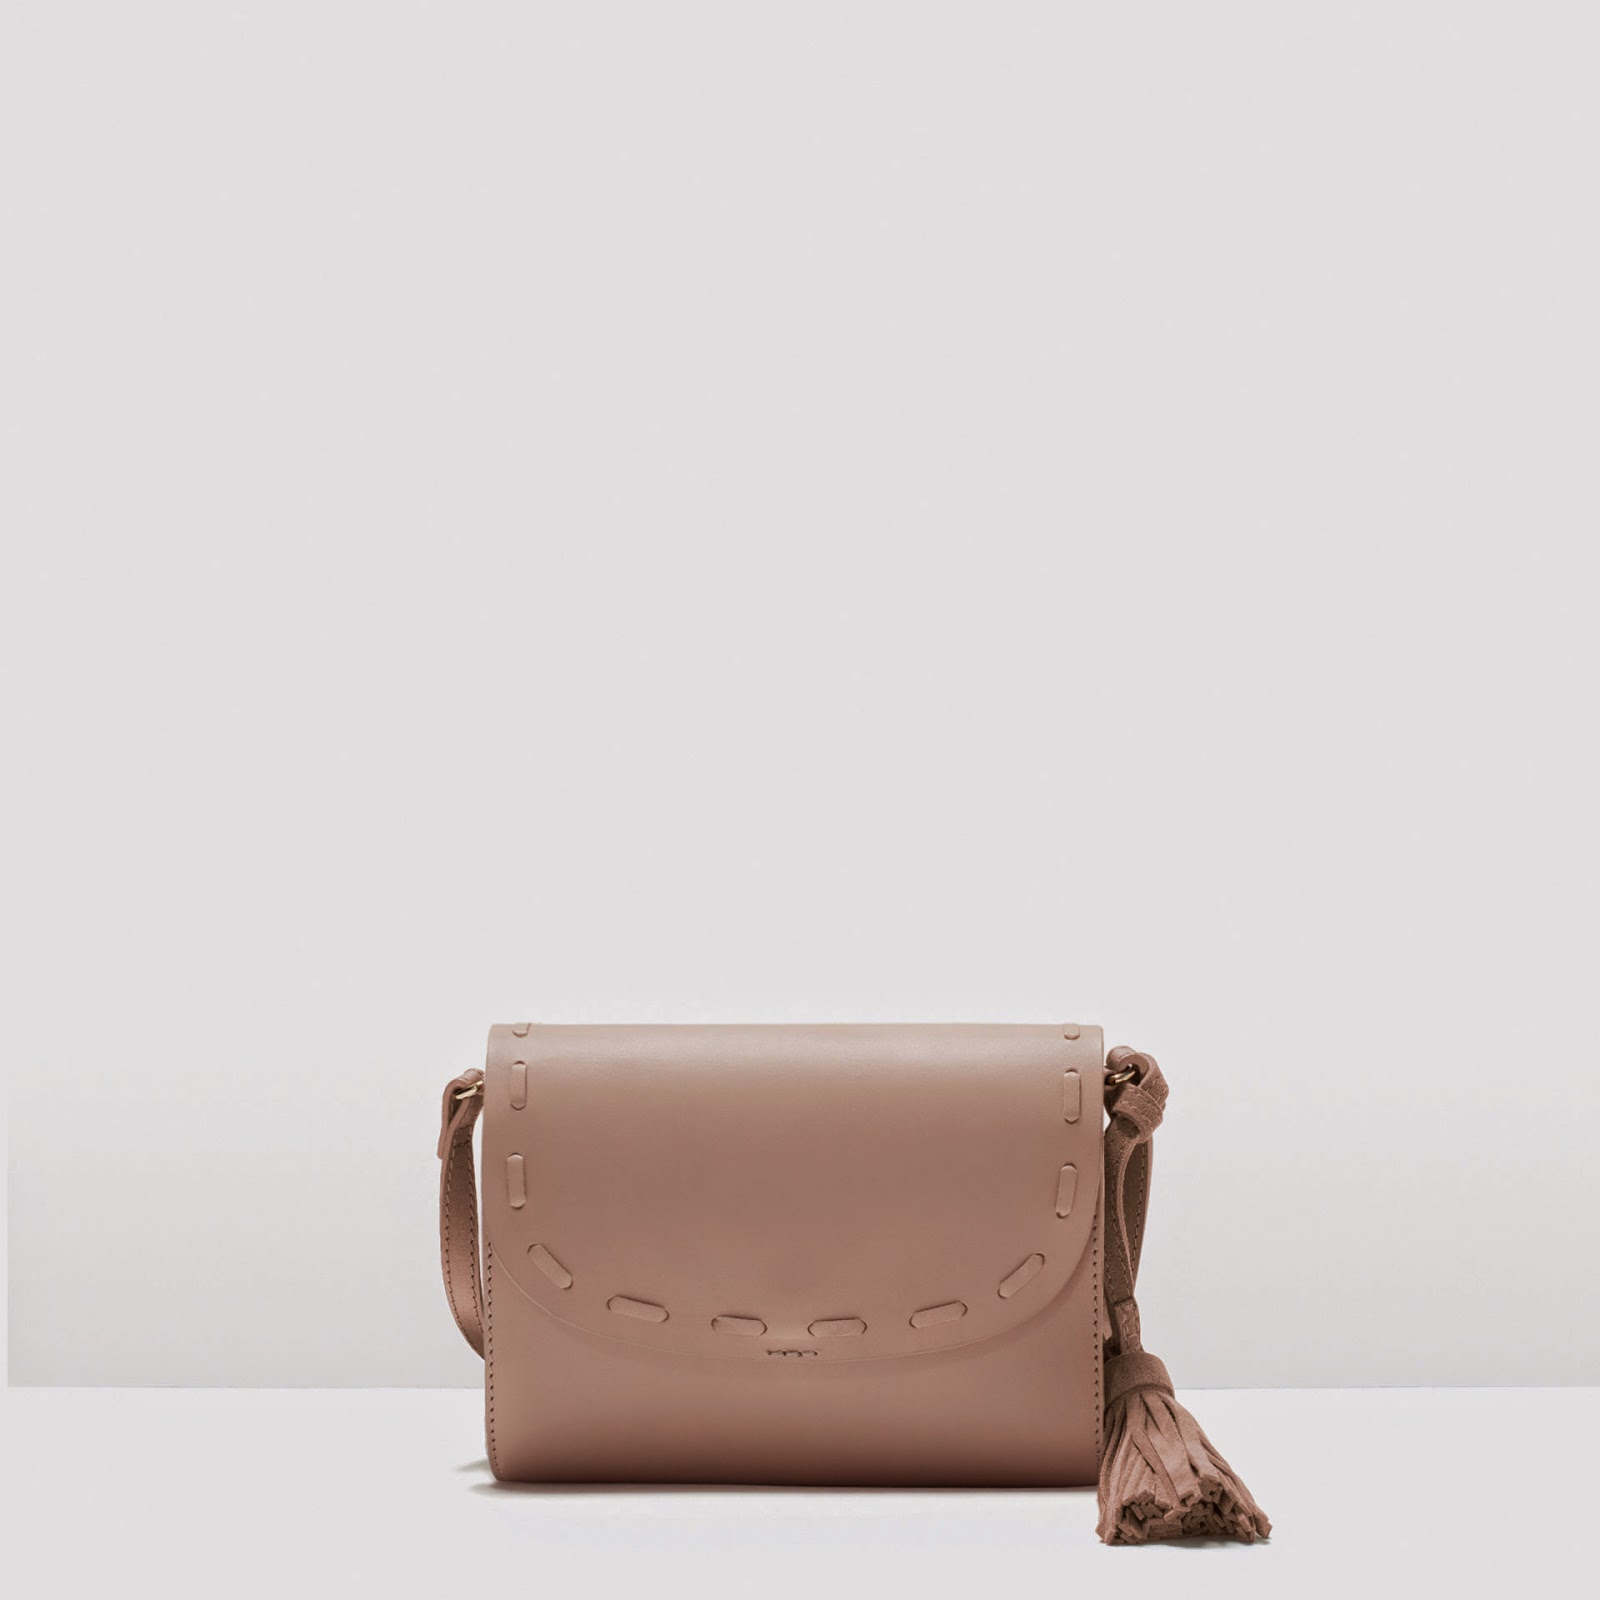 zara pink bag, zara messenger bag,